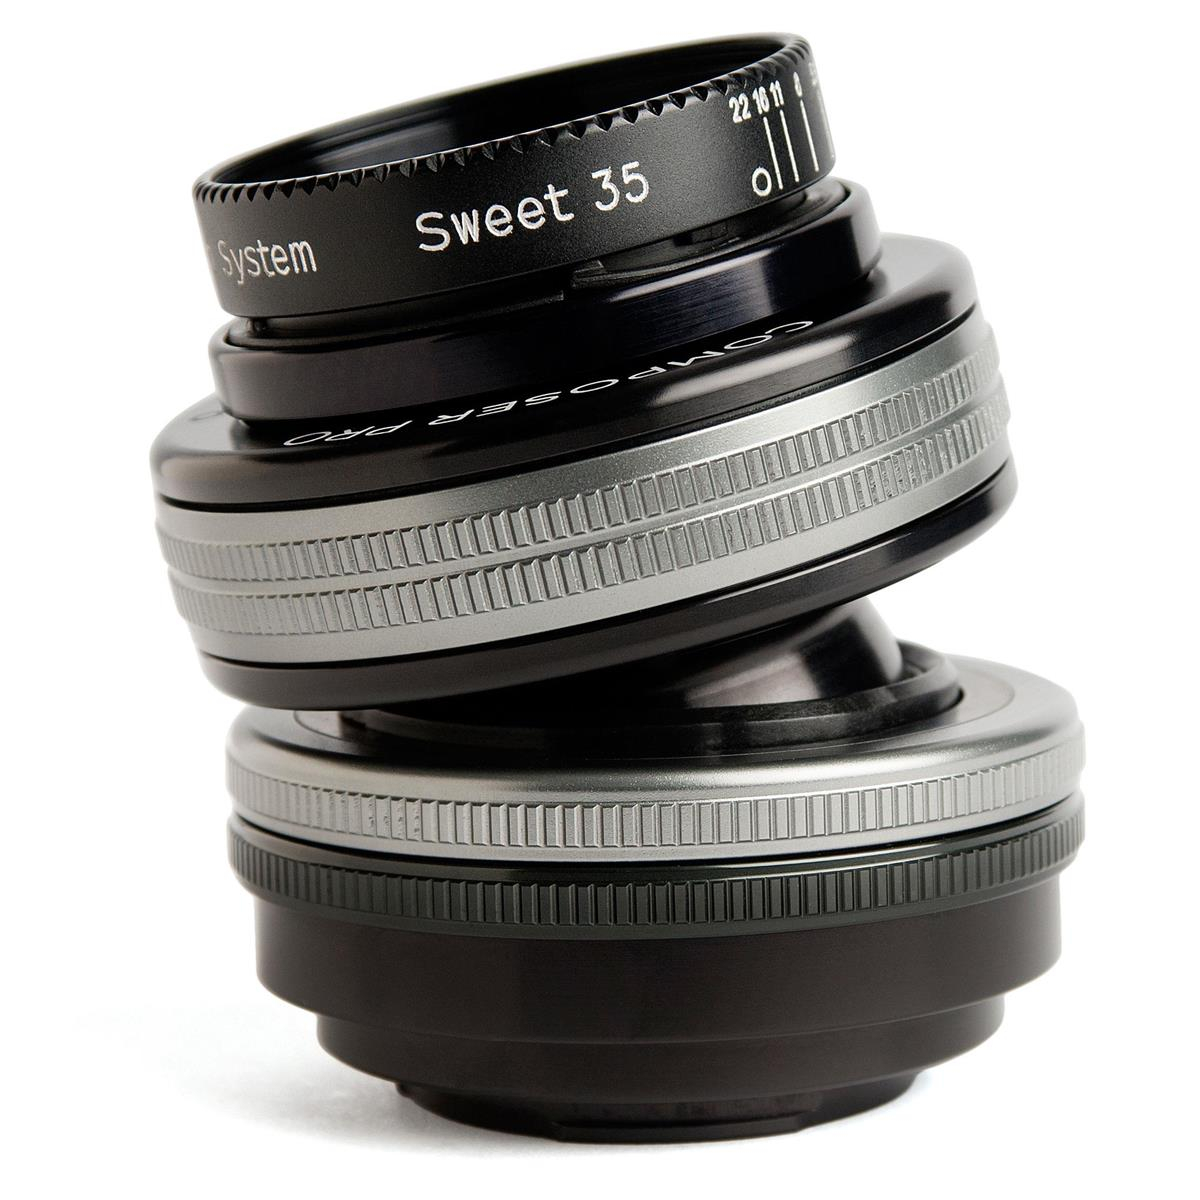 LENSBABY Composer Pro II Sweet 35 pro Canon RF